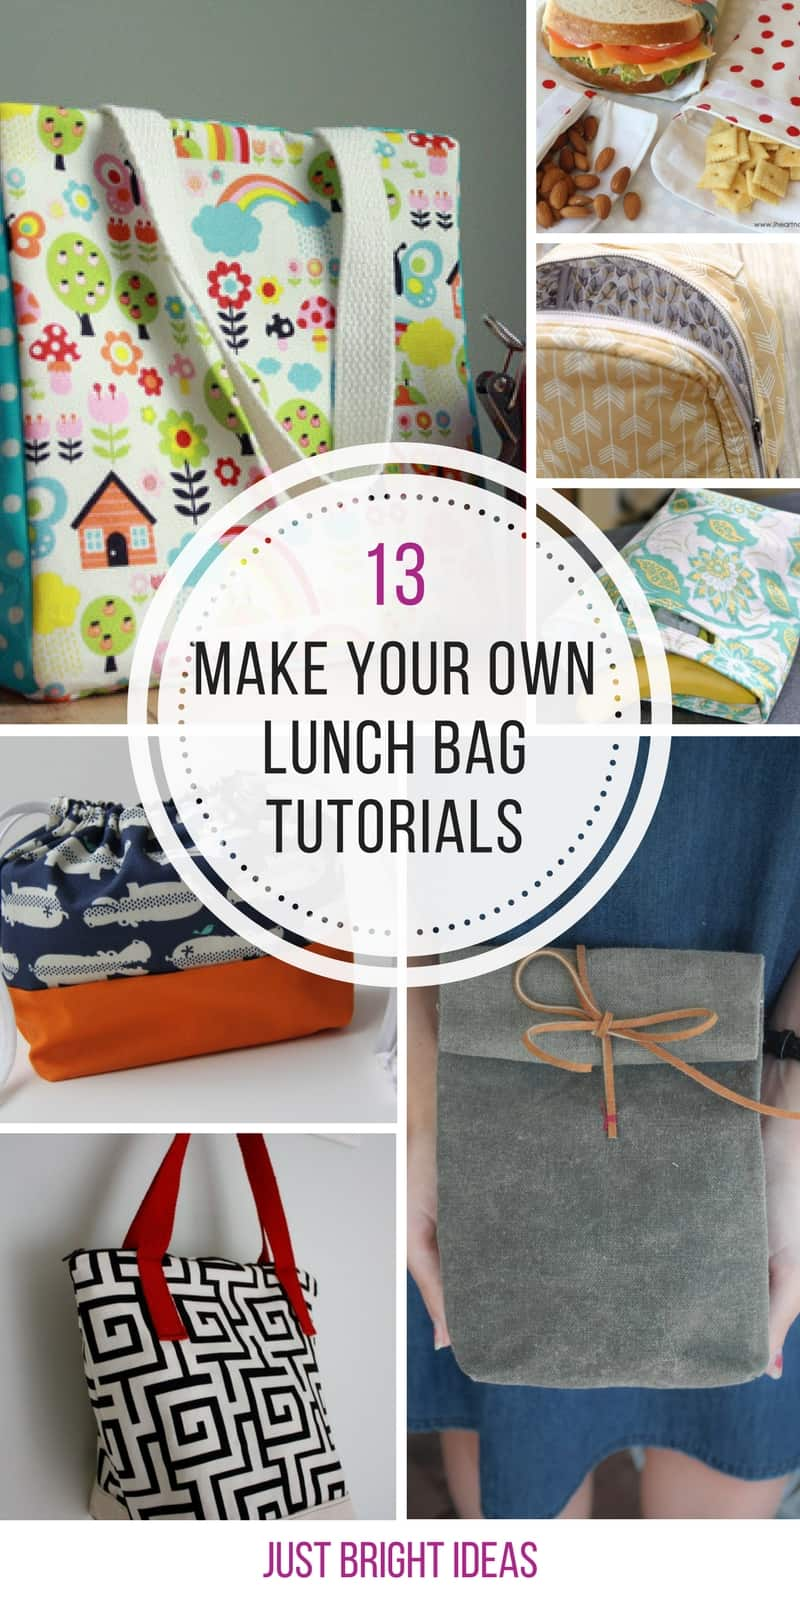 Loving these make your own lunch bag tutorials! Thanks for sharing!